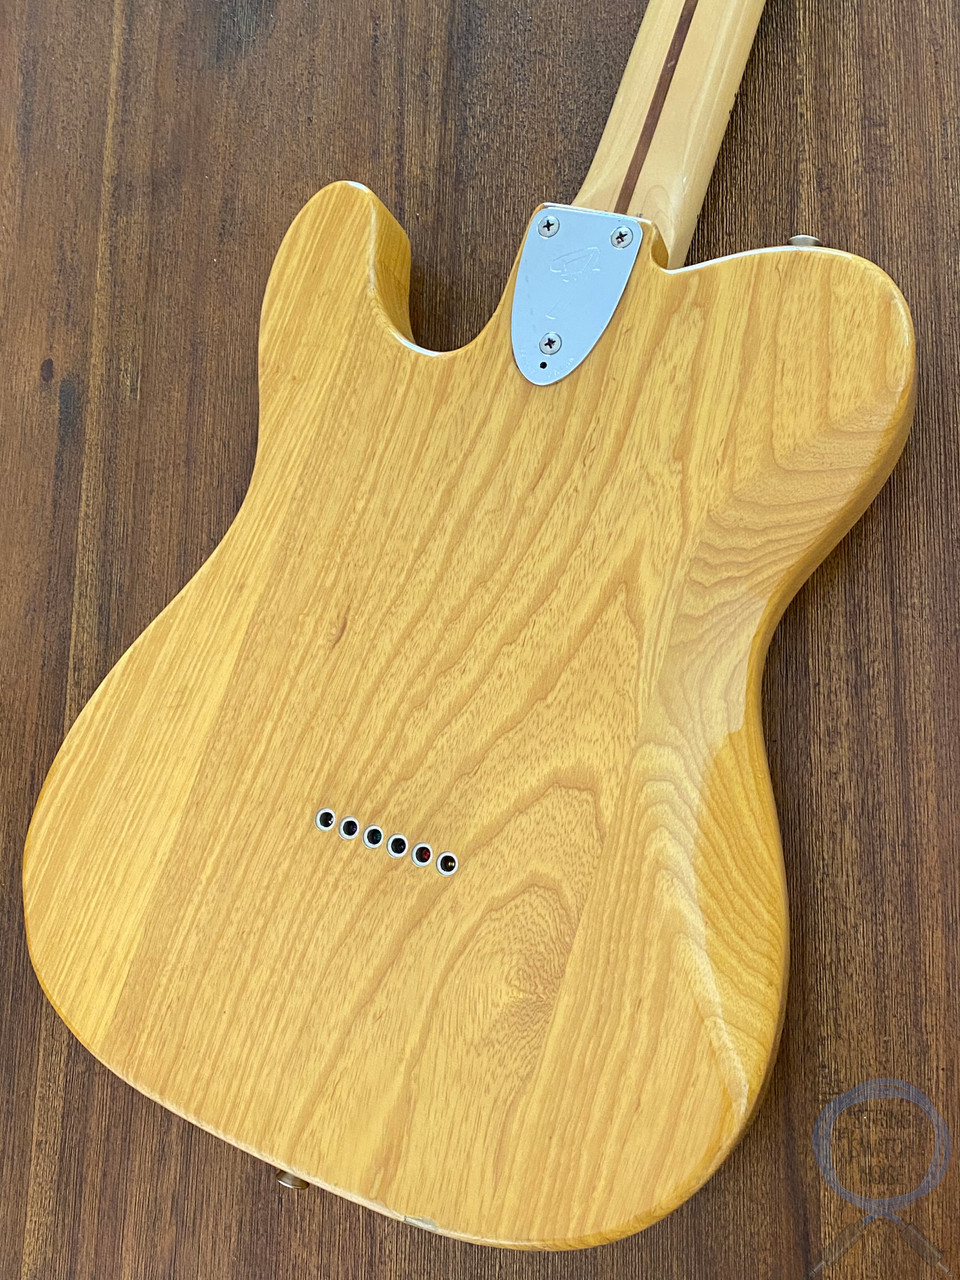 Fender Telecaster, Deluxe, '75, Ashwood, 1999, RARE to find